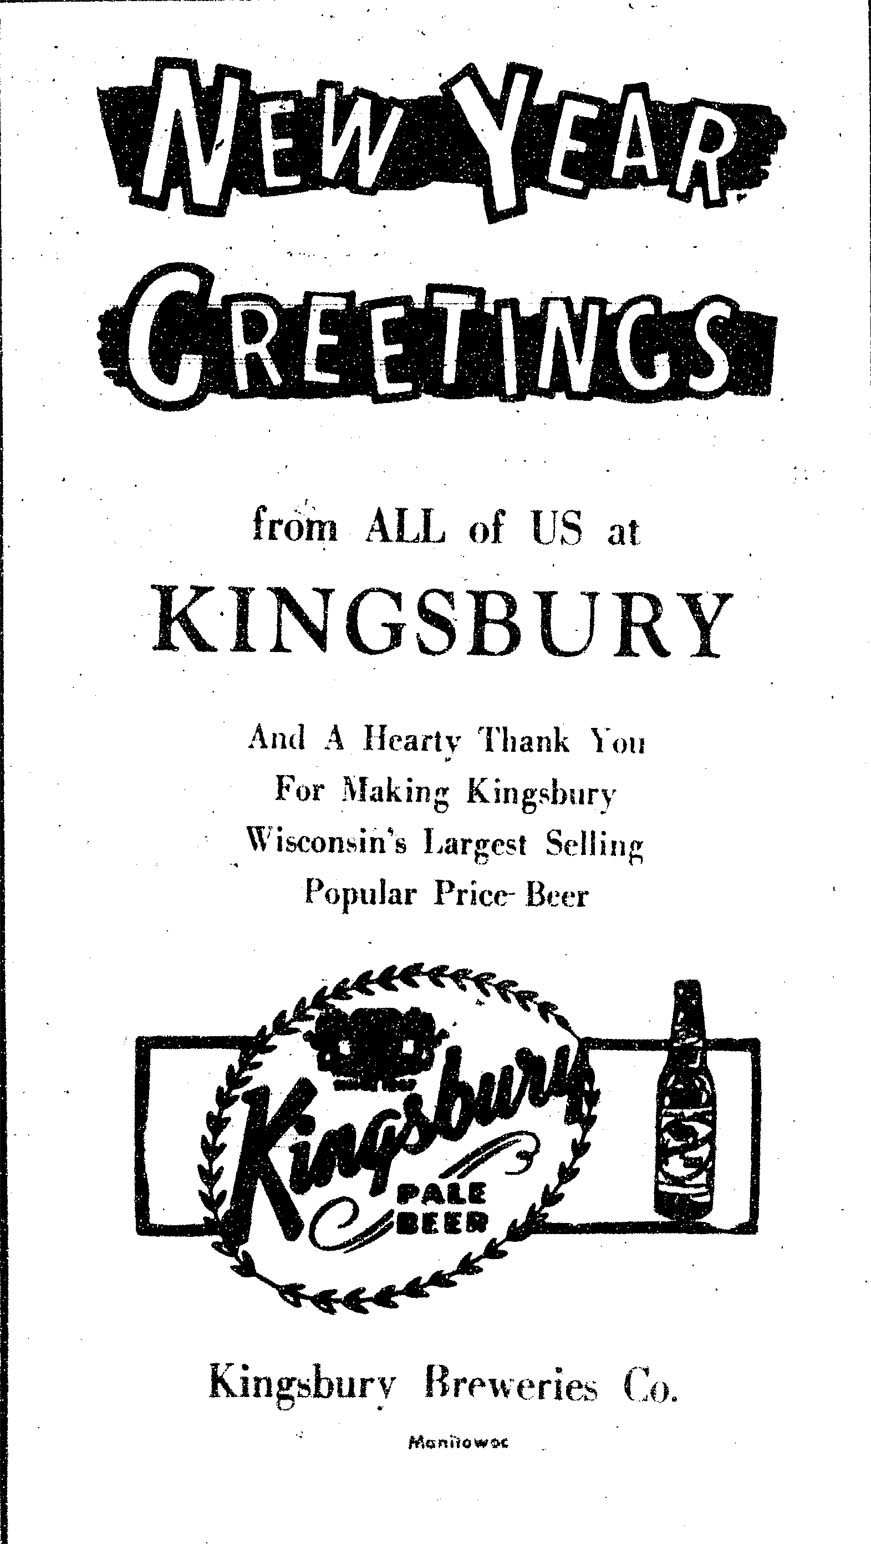 12-31-56 NEW YEARS AD